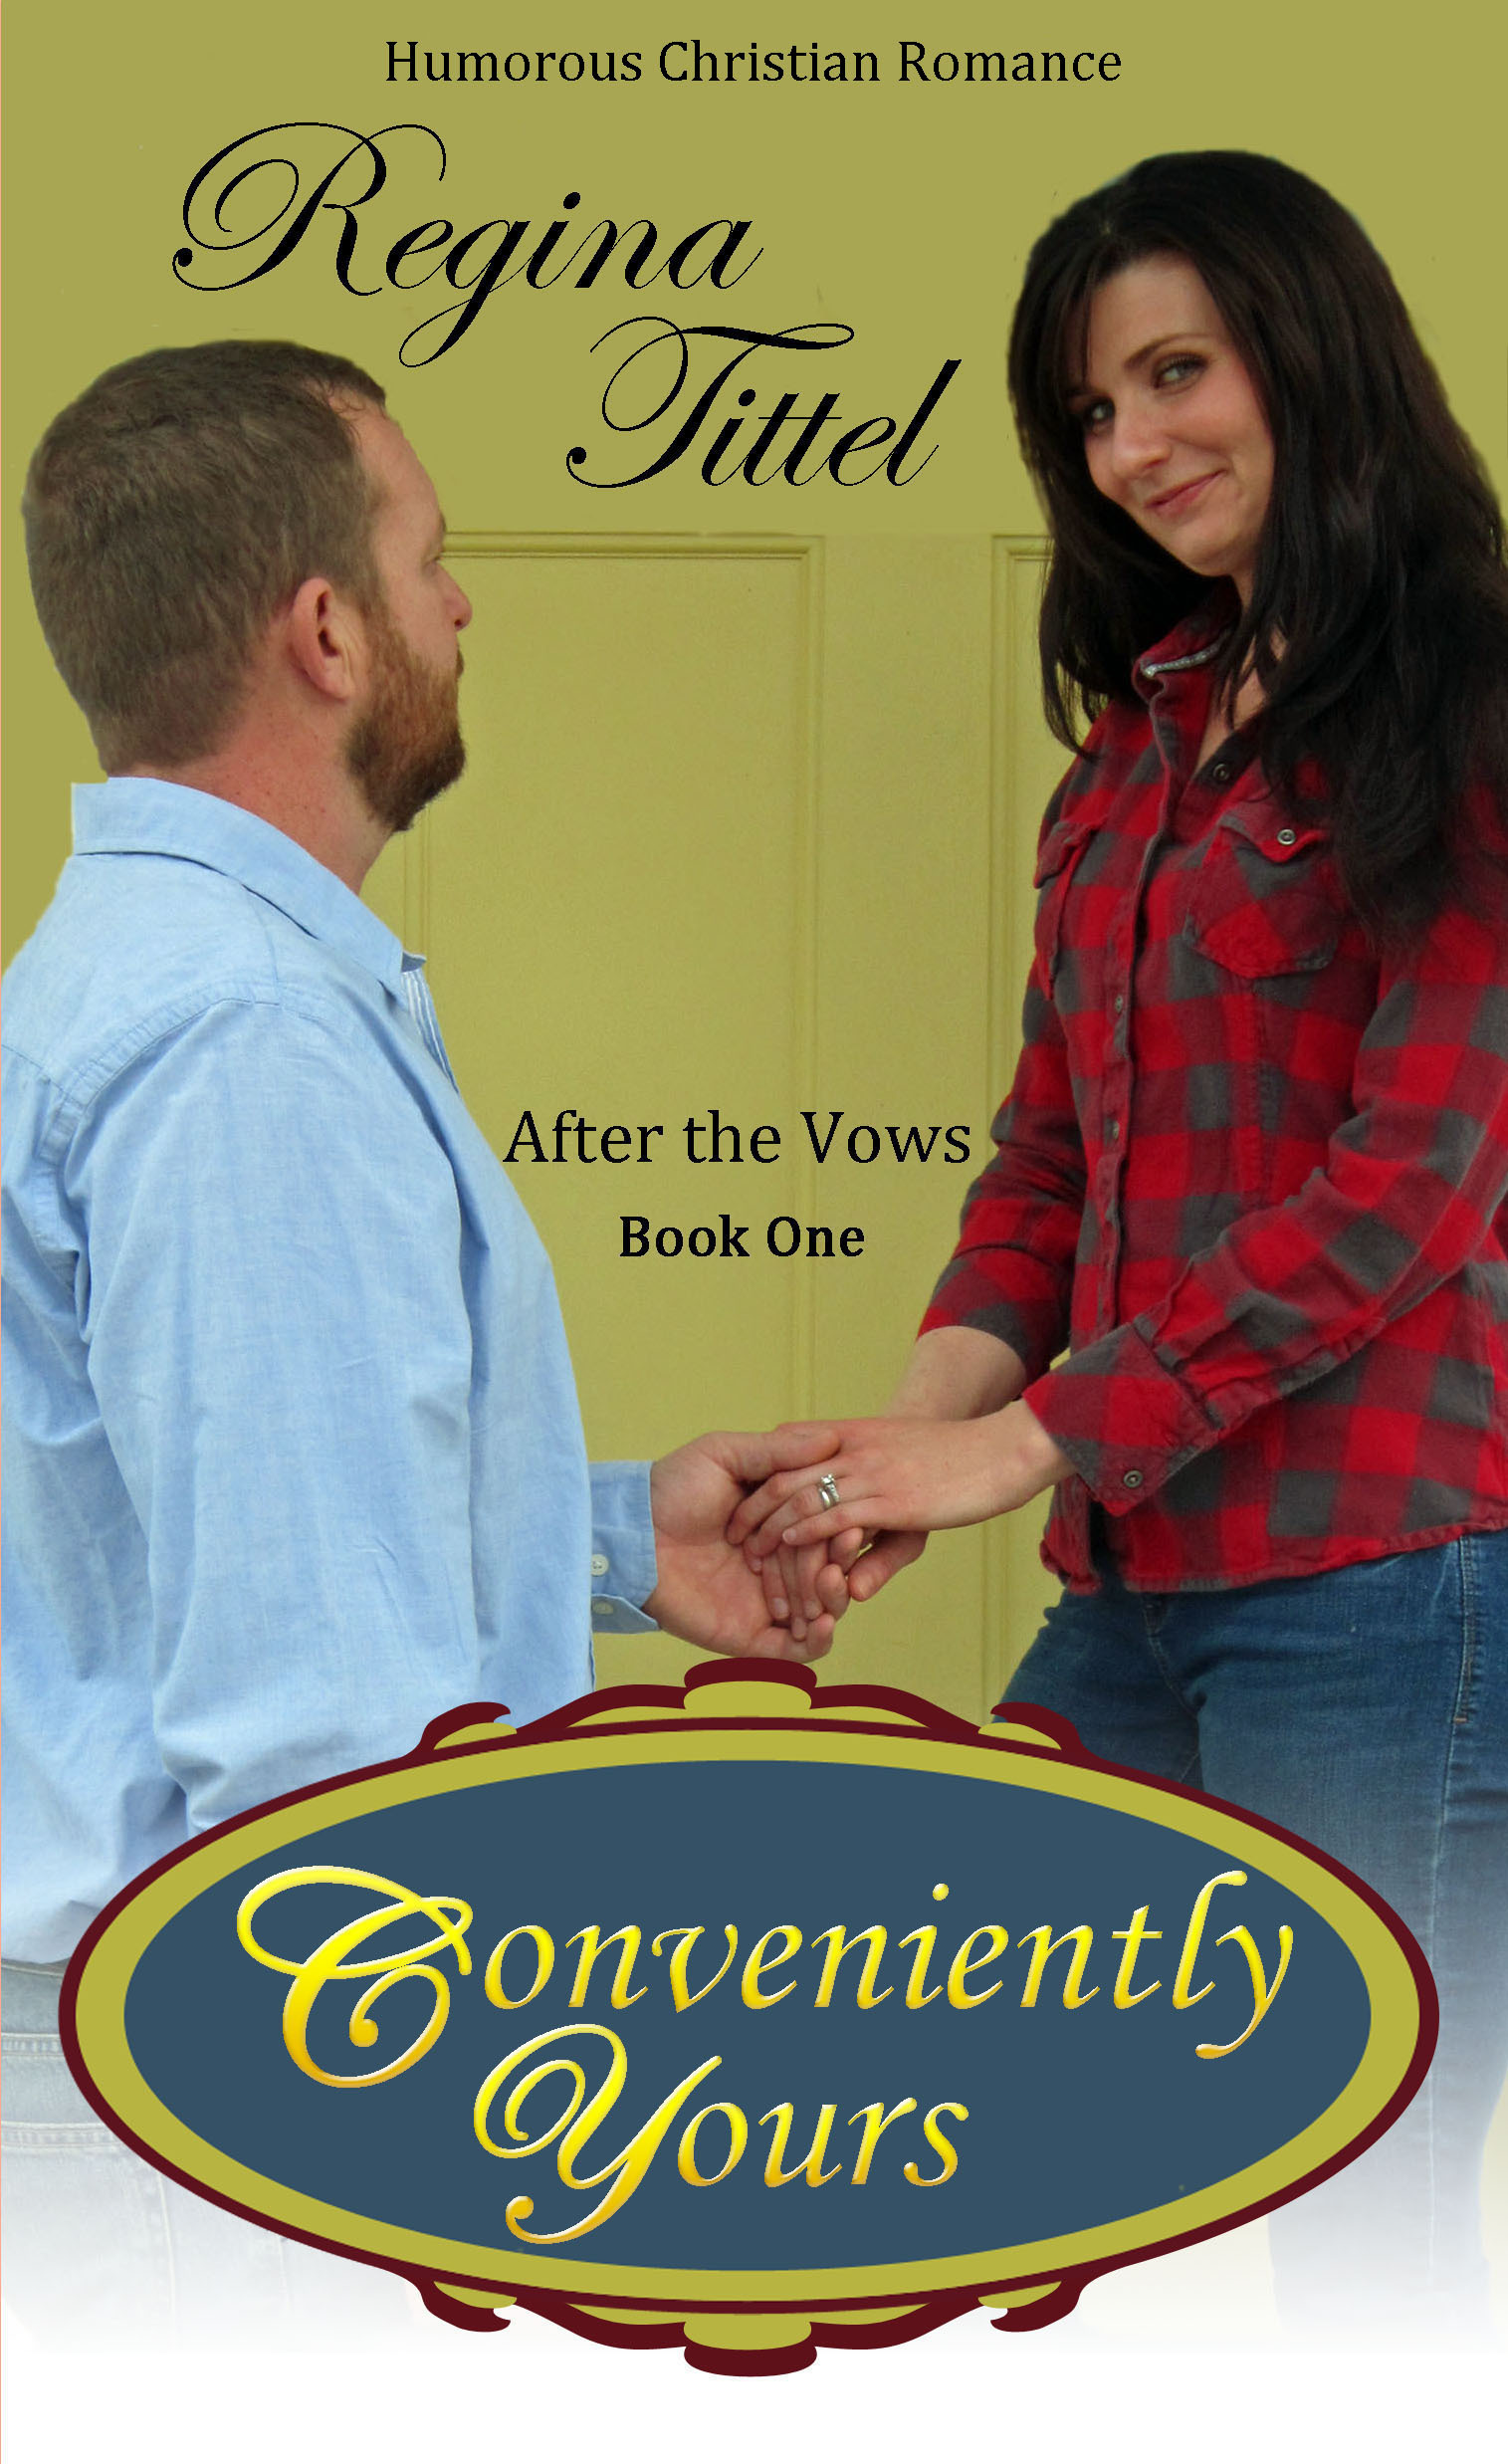 Conveniently Yours (After the Vows book 1) Regina Tittel